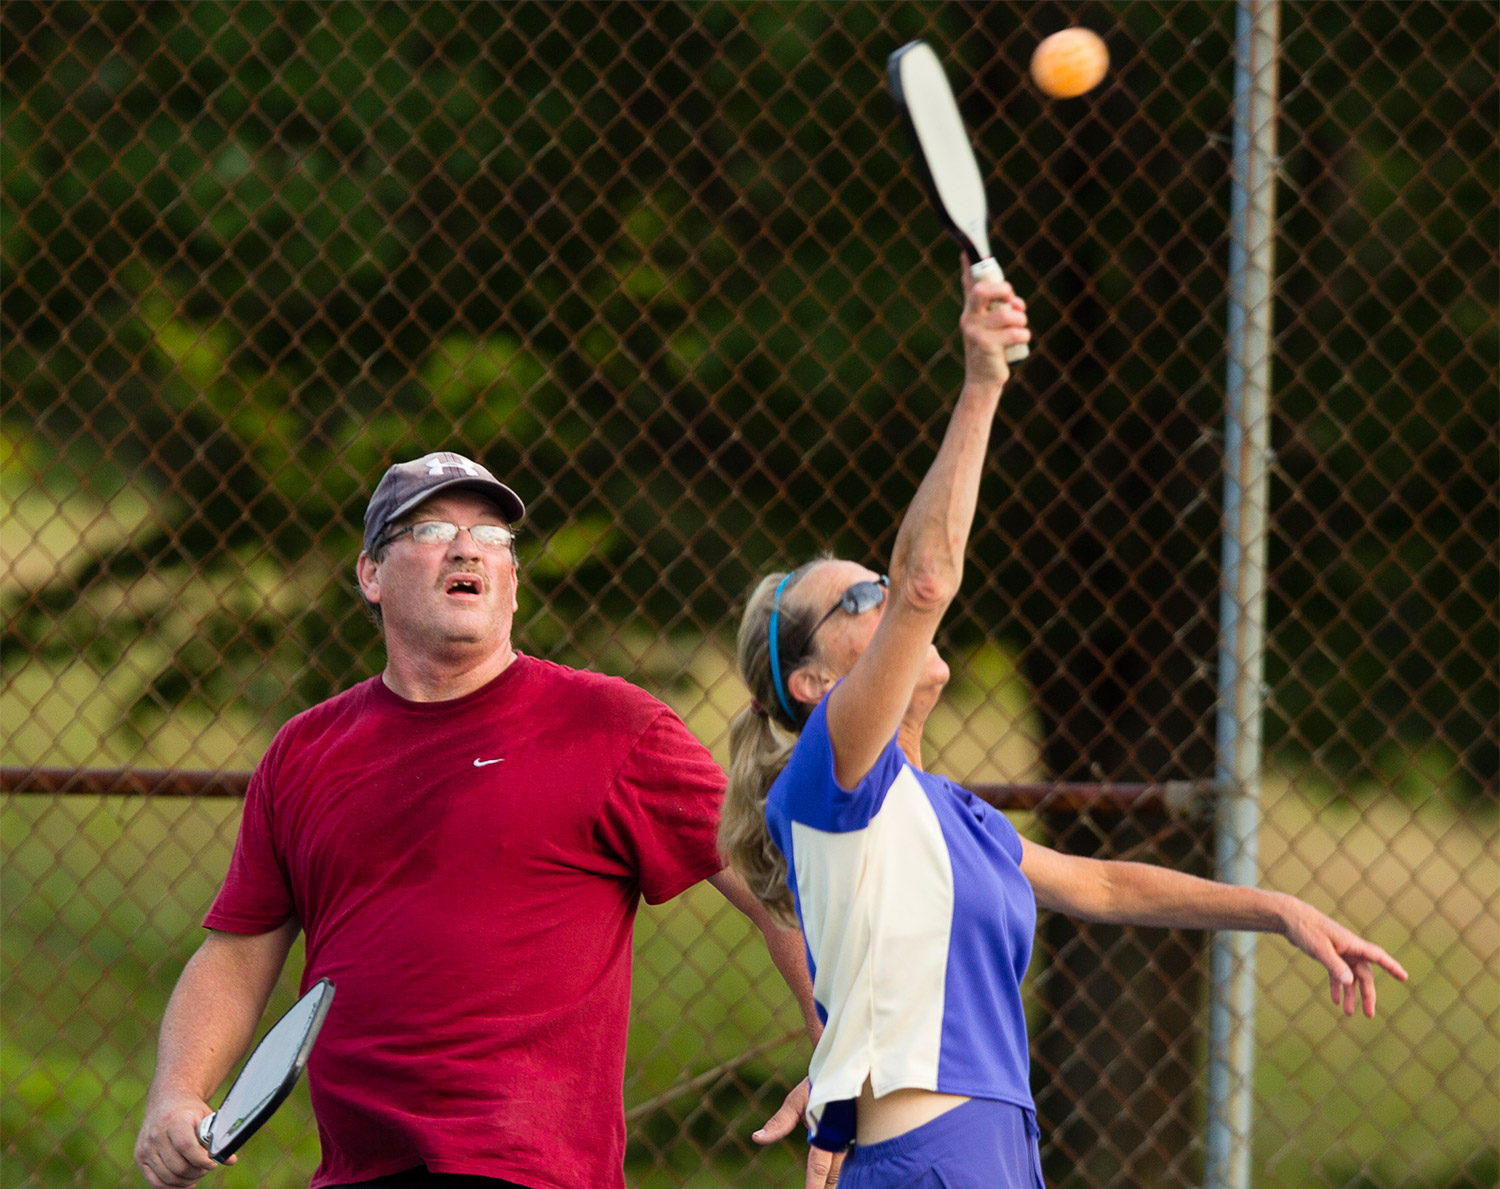 Carolee Carter of Falmouth returns a volley as teammate Dan Heckathorn of Gorham looks on while playing pickleball. Carl D. Walsh/Staff Photographer